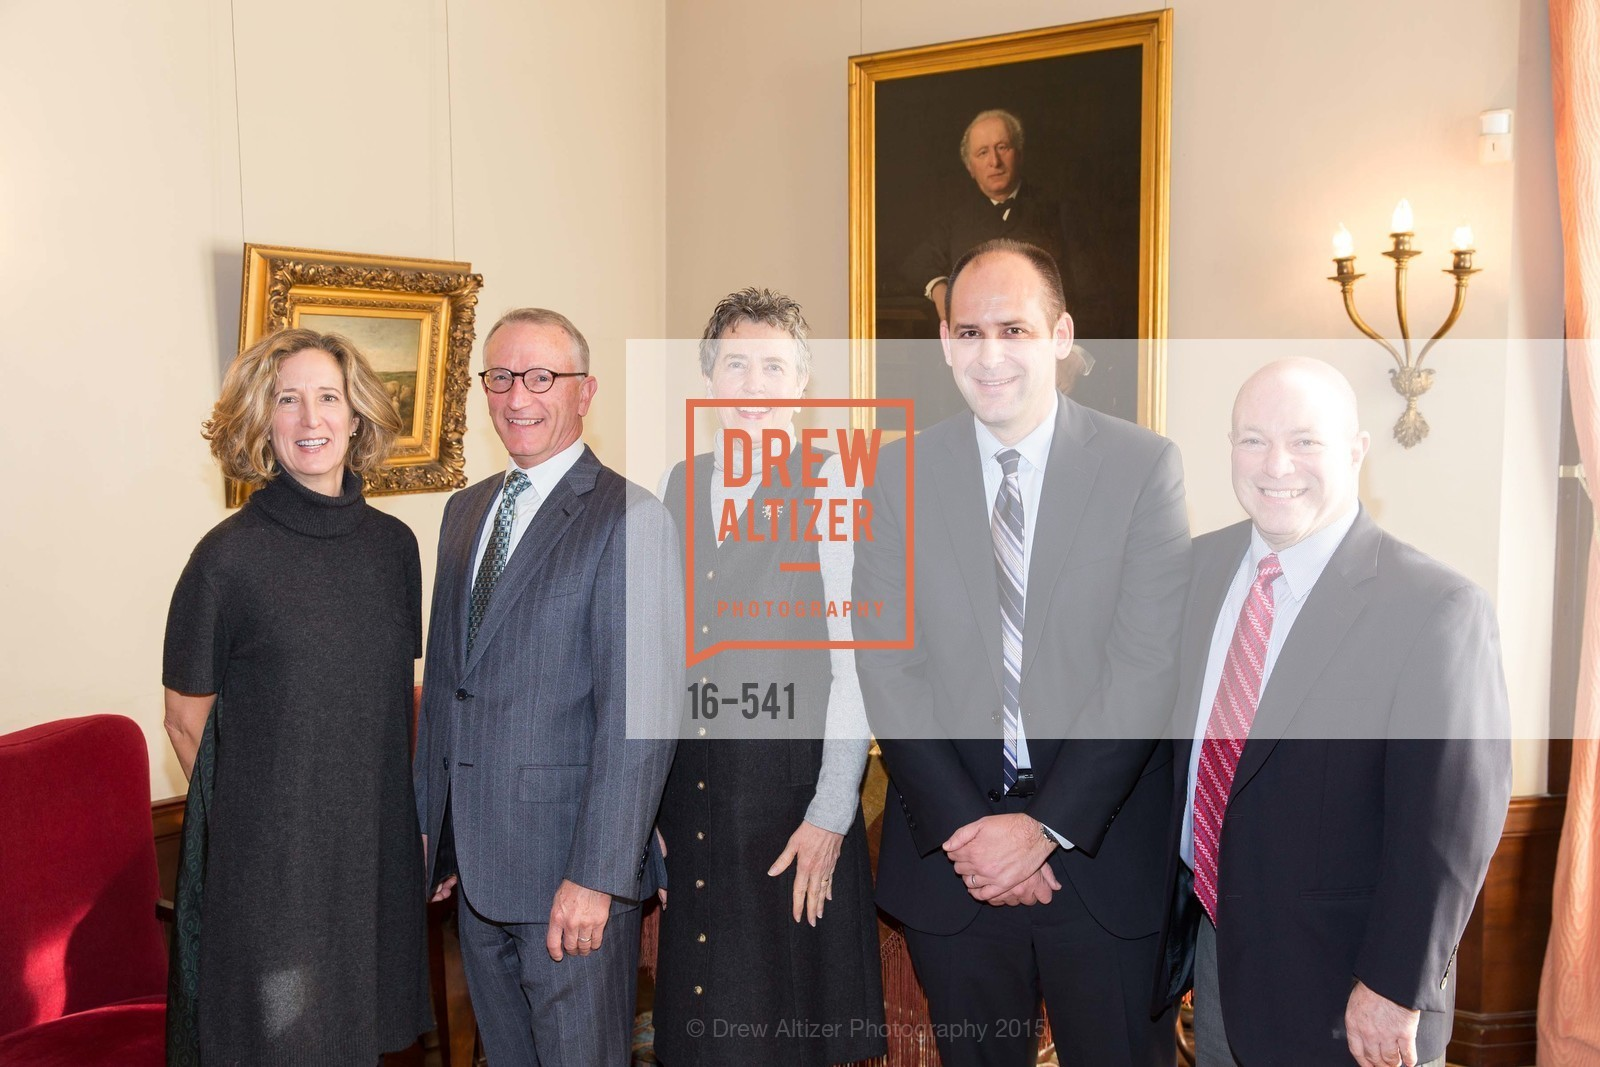 Courtney Damkroger, David Wessel, Alice Russell-Shapiro, Mike Buhler, John Rothmann, Ceremony Inaugurating the Campaign for San Francisco Heritage & Haas-Lilienthal House, Haas-Lilienthal House. 2007 Franklin Street, November 18th, 2015,Drew Altizer, Drew Altizer Photography, full-service event agency, private events, San Francisco photographer, photographer California